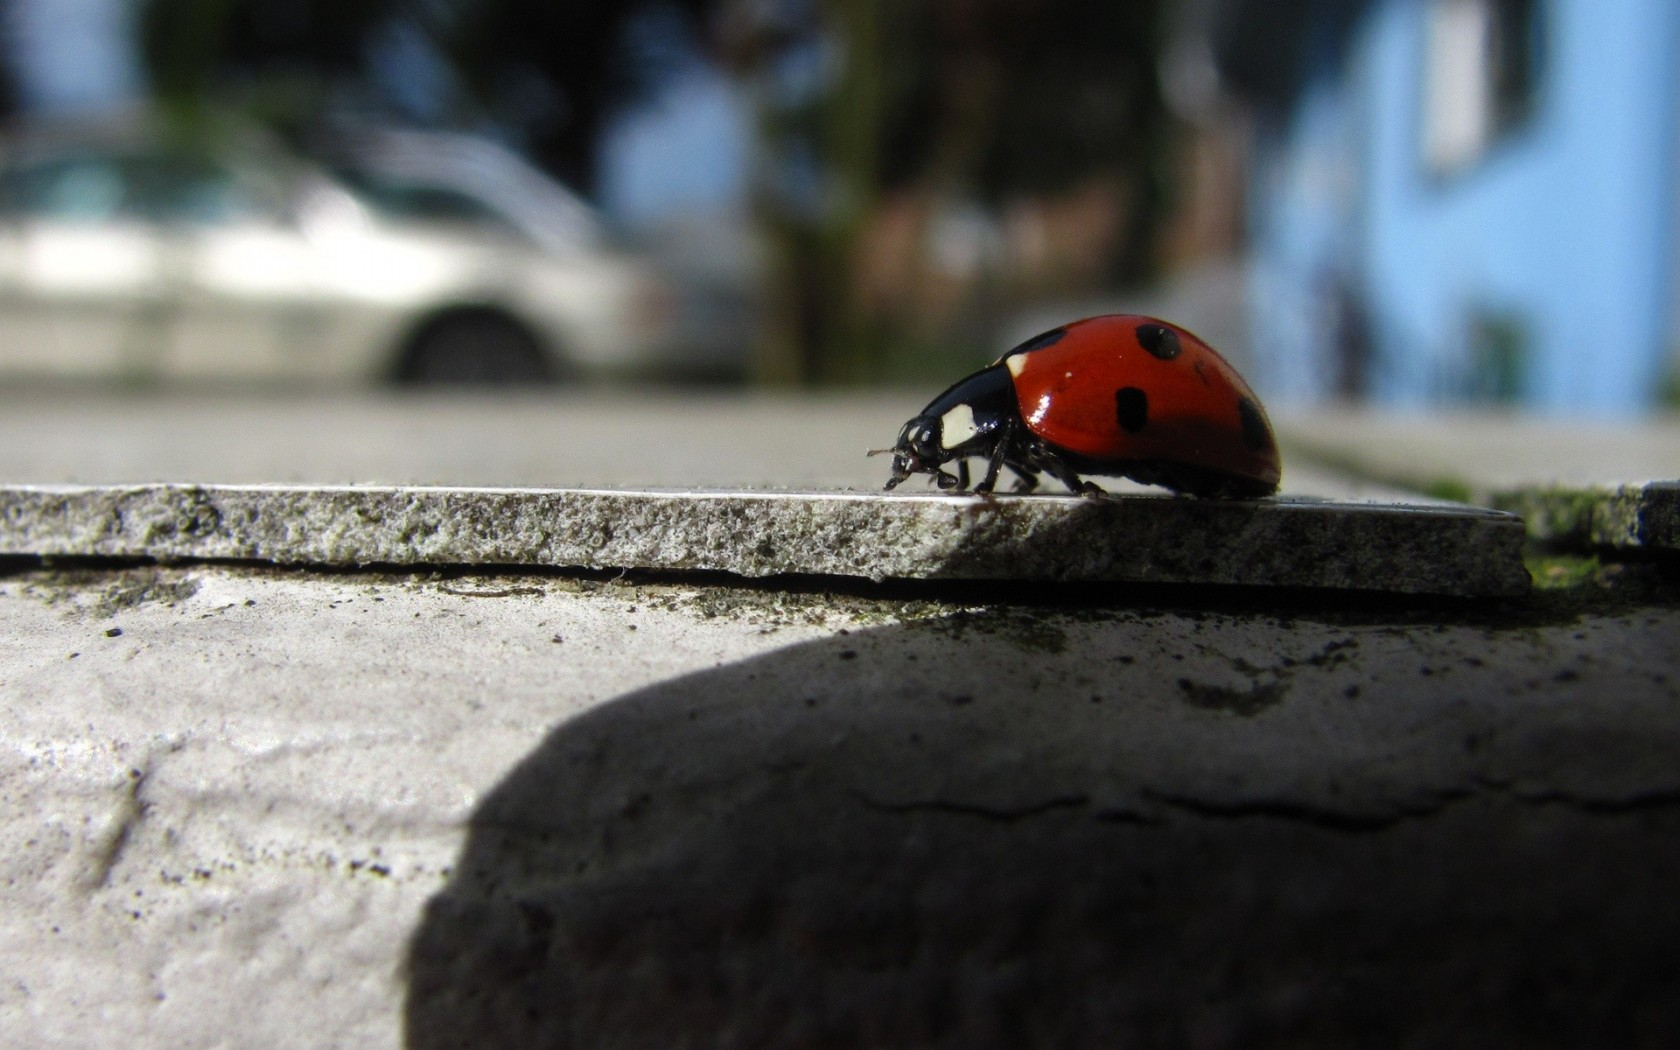 Insect wallpapers - Coccinellidae